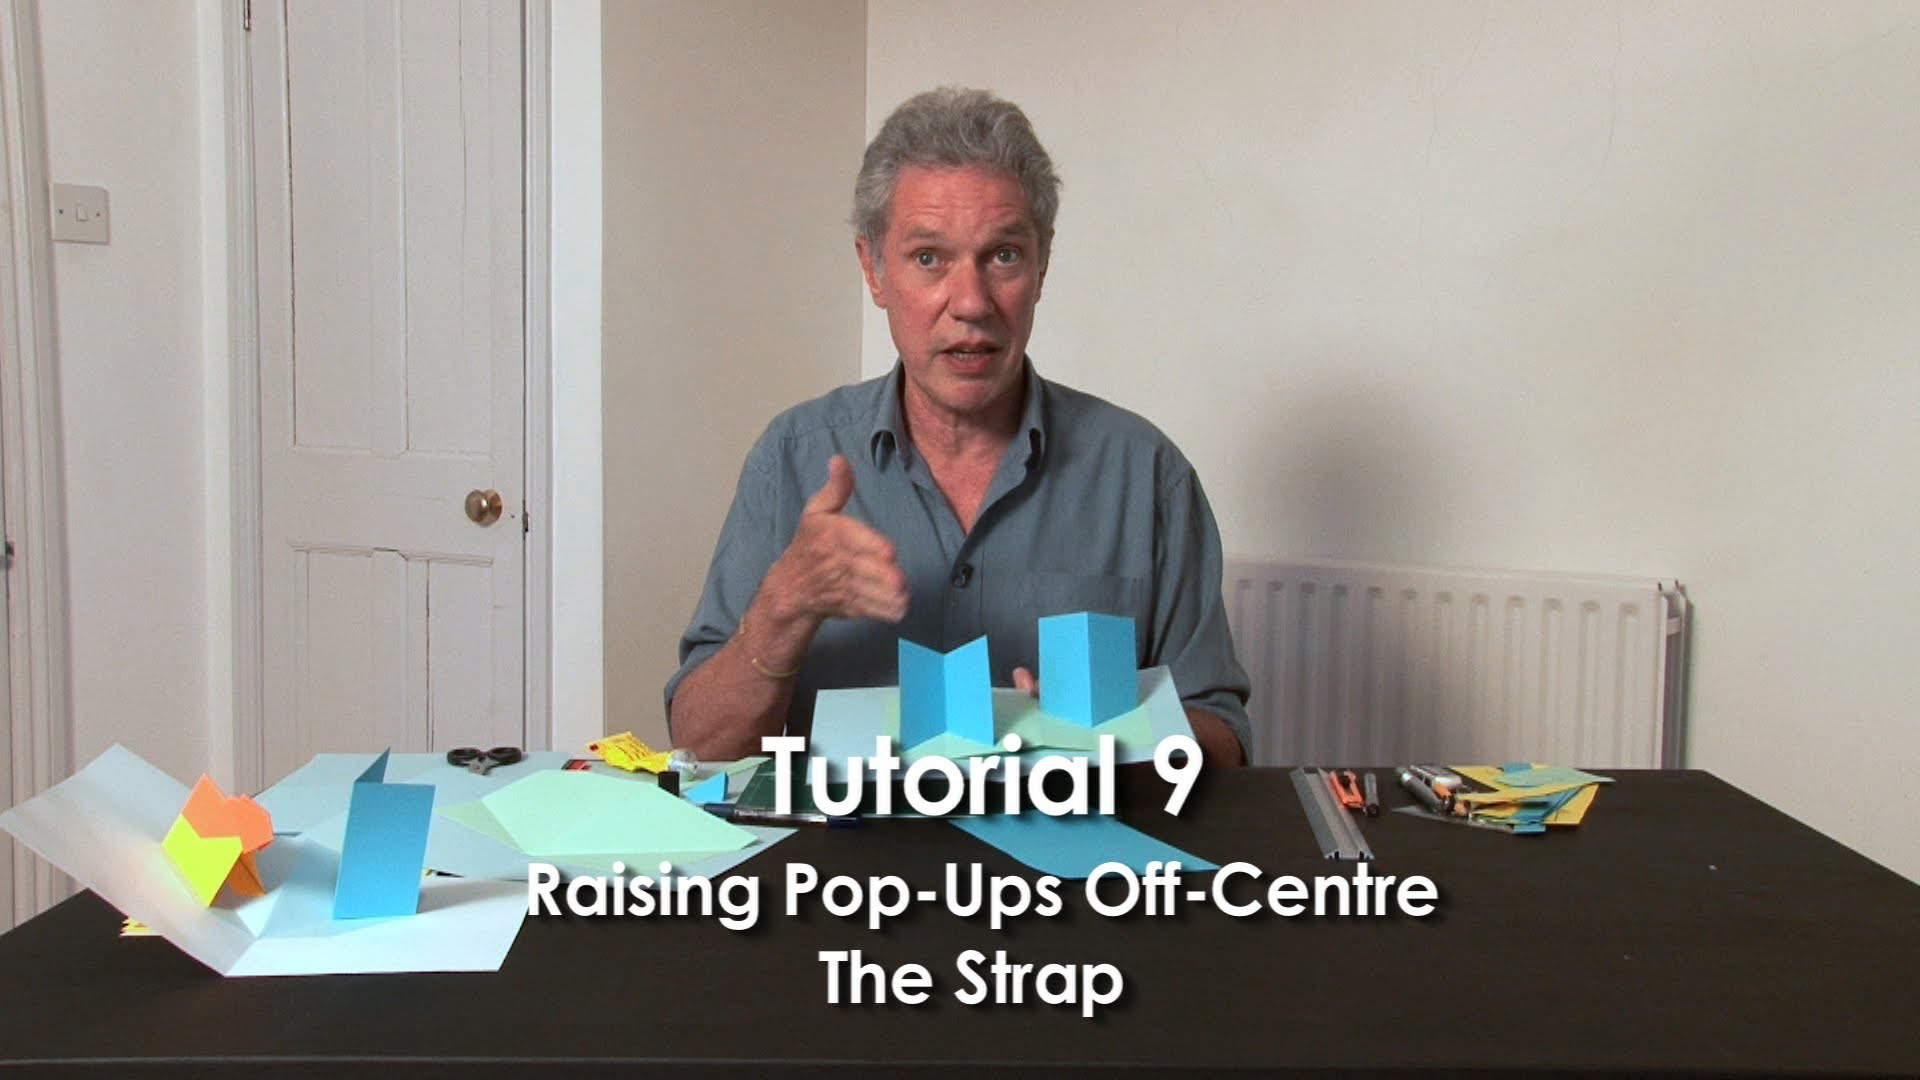 Tutorial 9 - Raising Pop-Ups Off-Centre.  The Strap